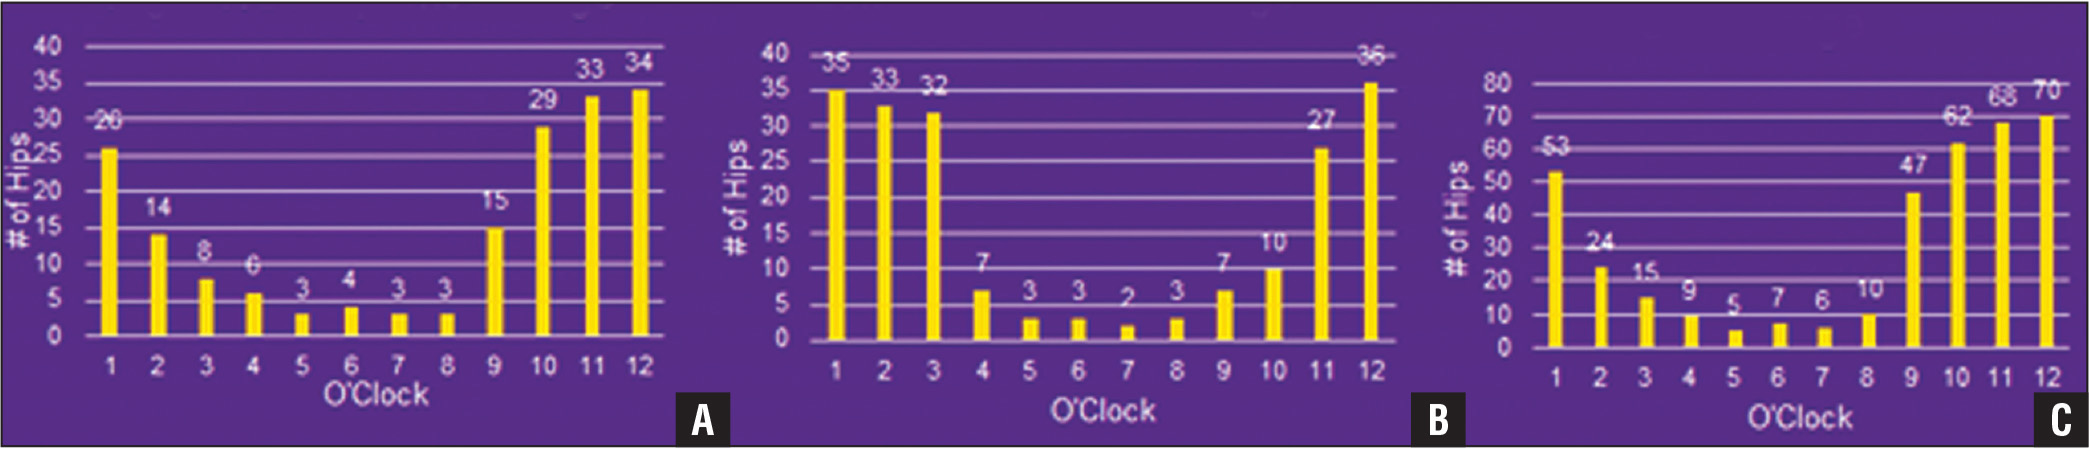 Clock face results for cup uncoverage. Right (A), left (B), and right plus left (C) total hip arthroplasty cup uncoverage.